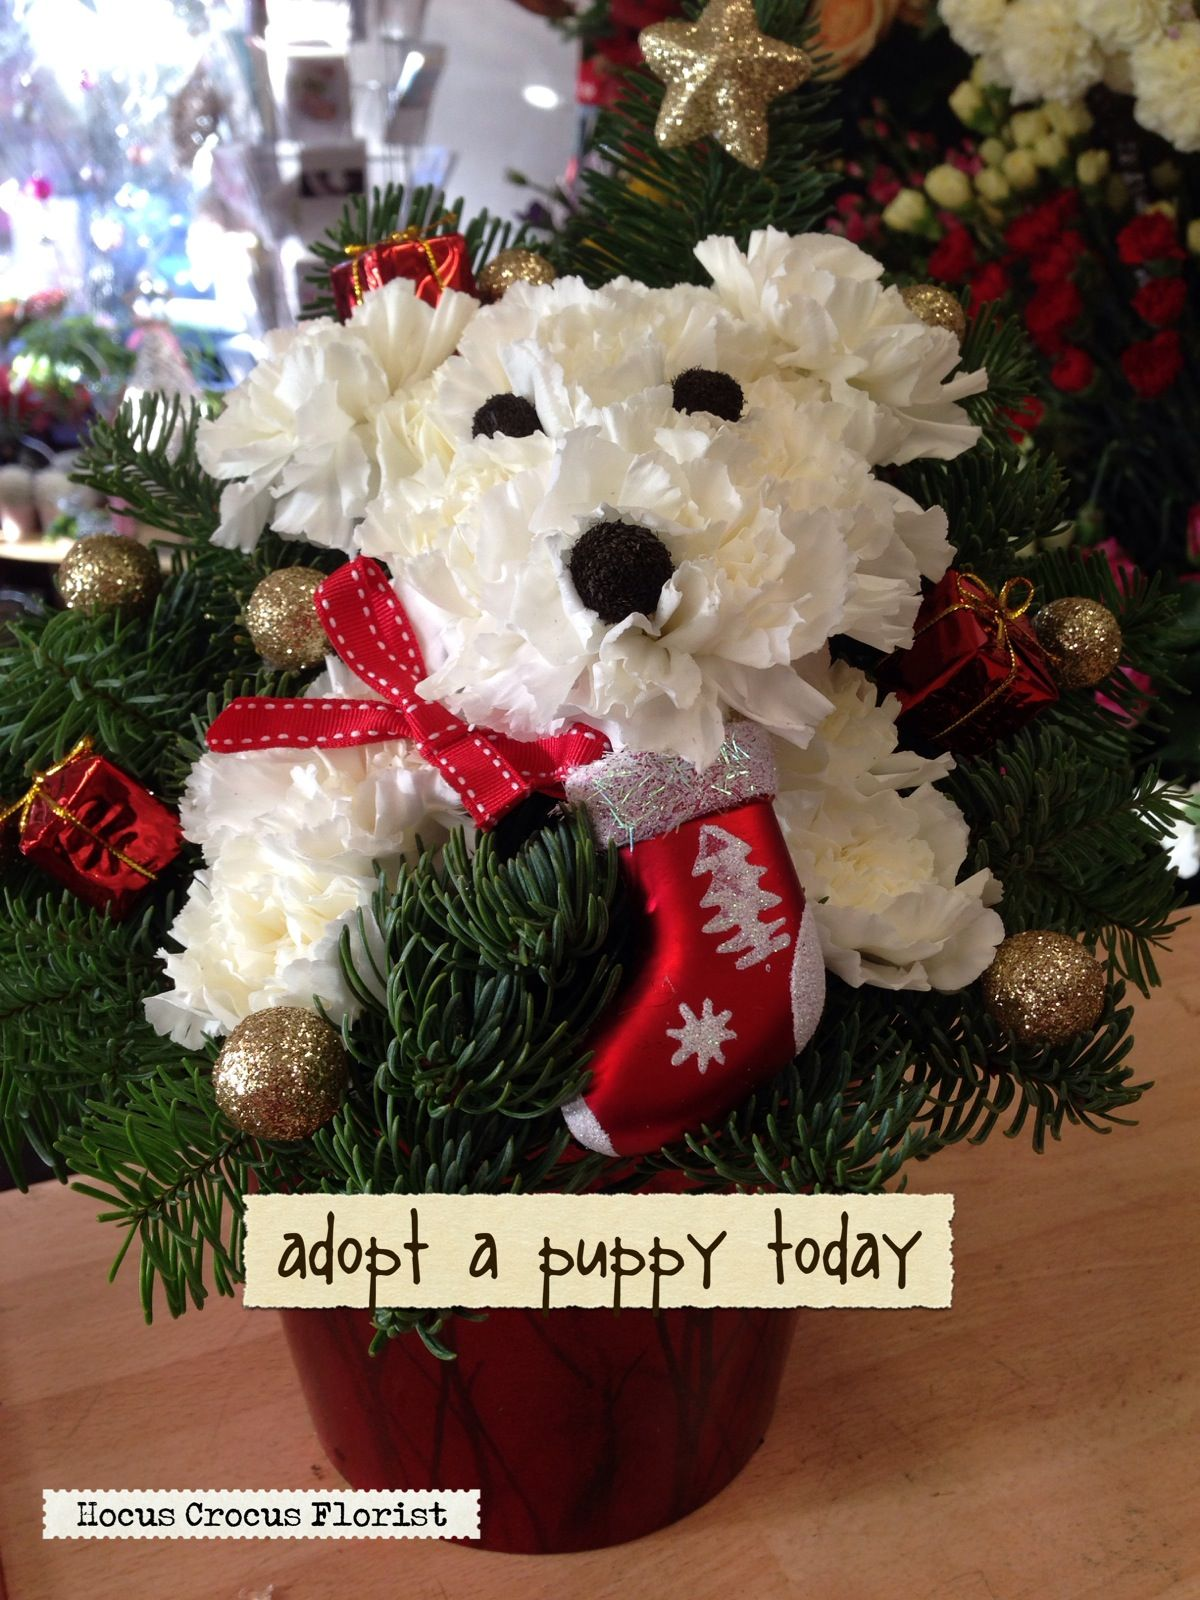 Cute Doggy Made From Carnations Like Us On Facebook Search Hocus